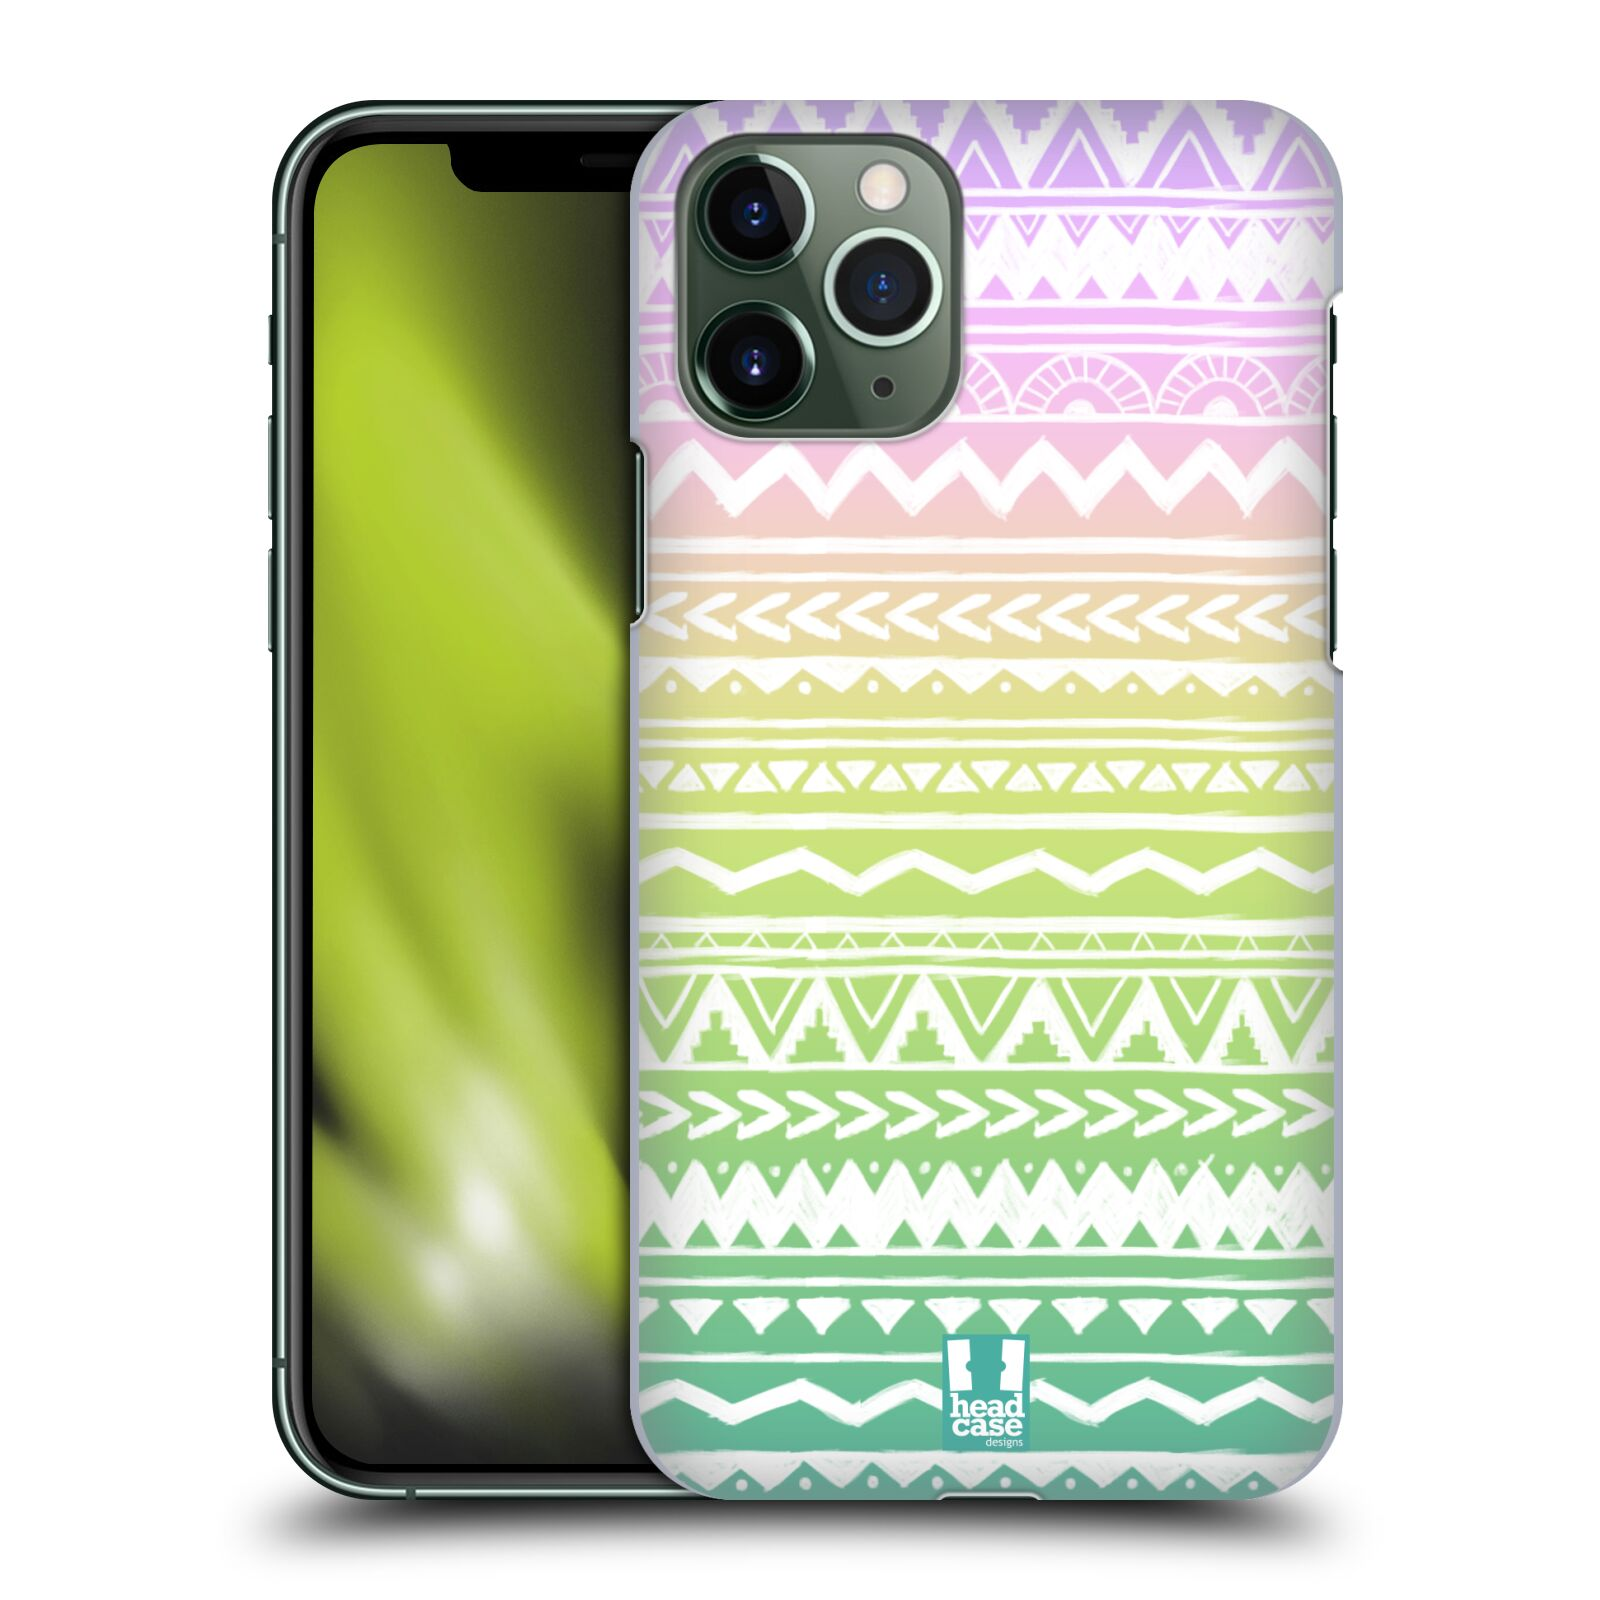 kryt na iphone 11 karl lagerfeld | Plastové pouzdro na mobil Apple iPhone 11 Pro - Head Case - MIX AZTEC DRAWN